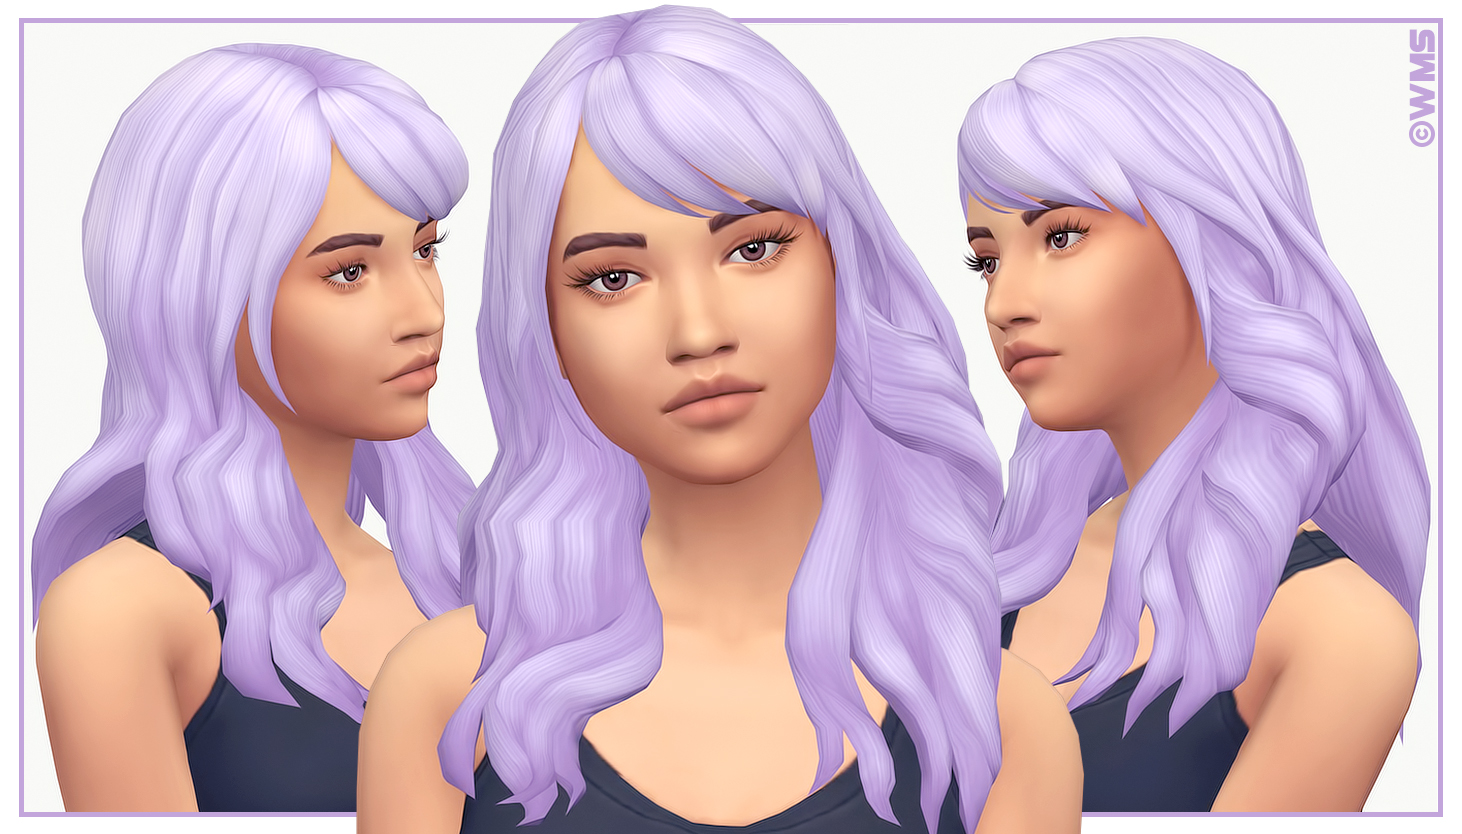 My Sims 4 Blog: Limerence Hair and Accessory for Females